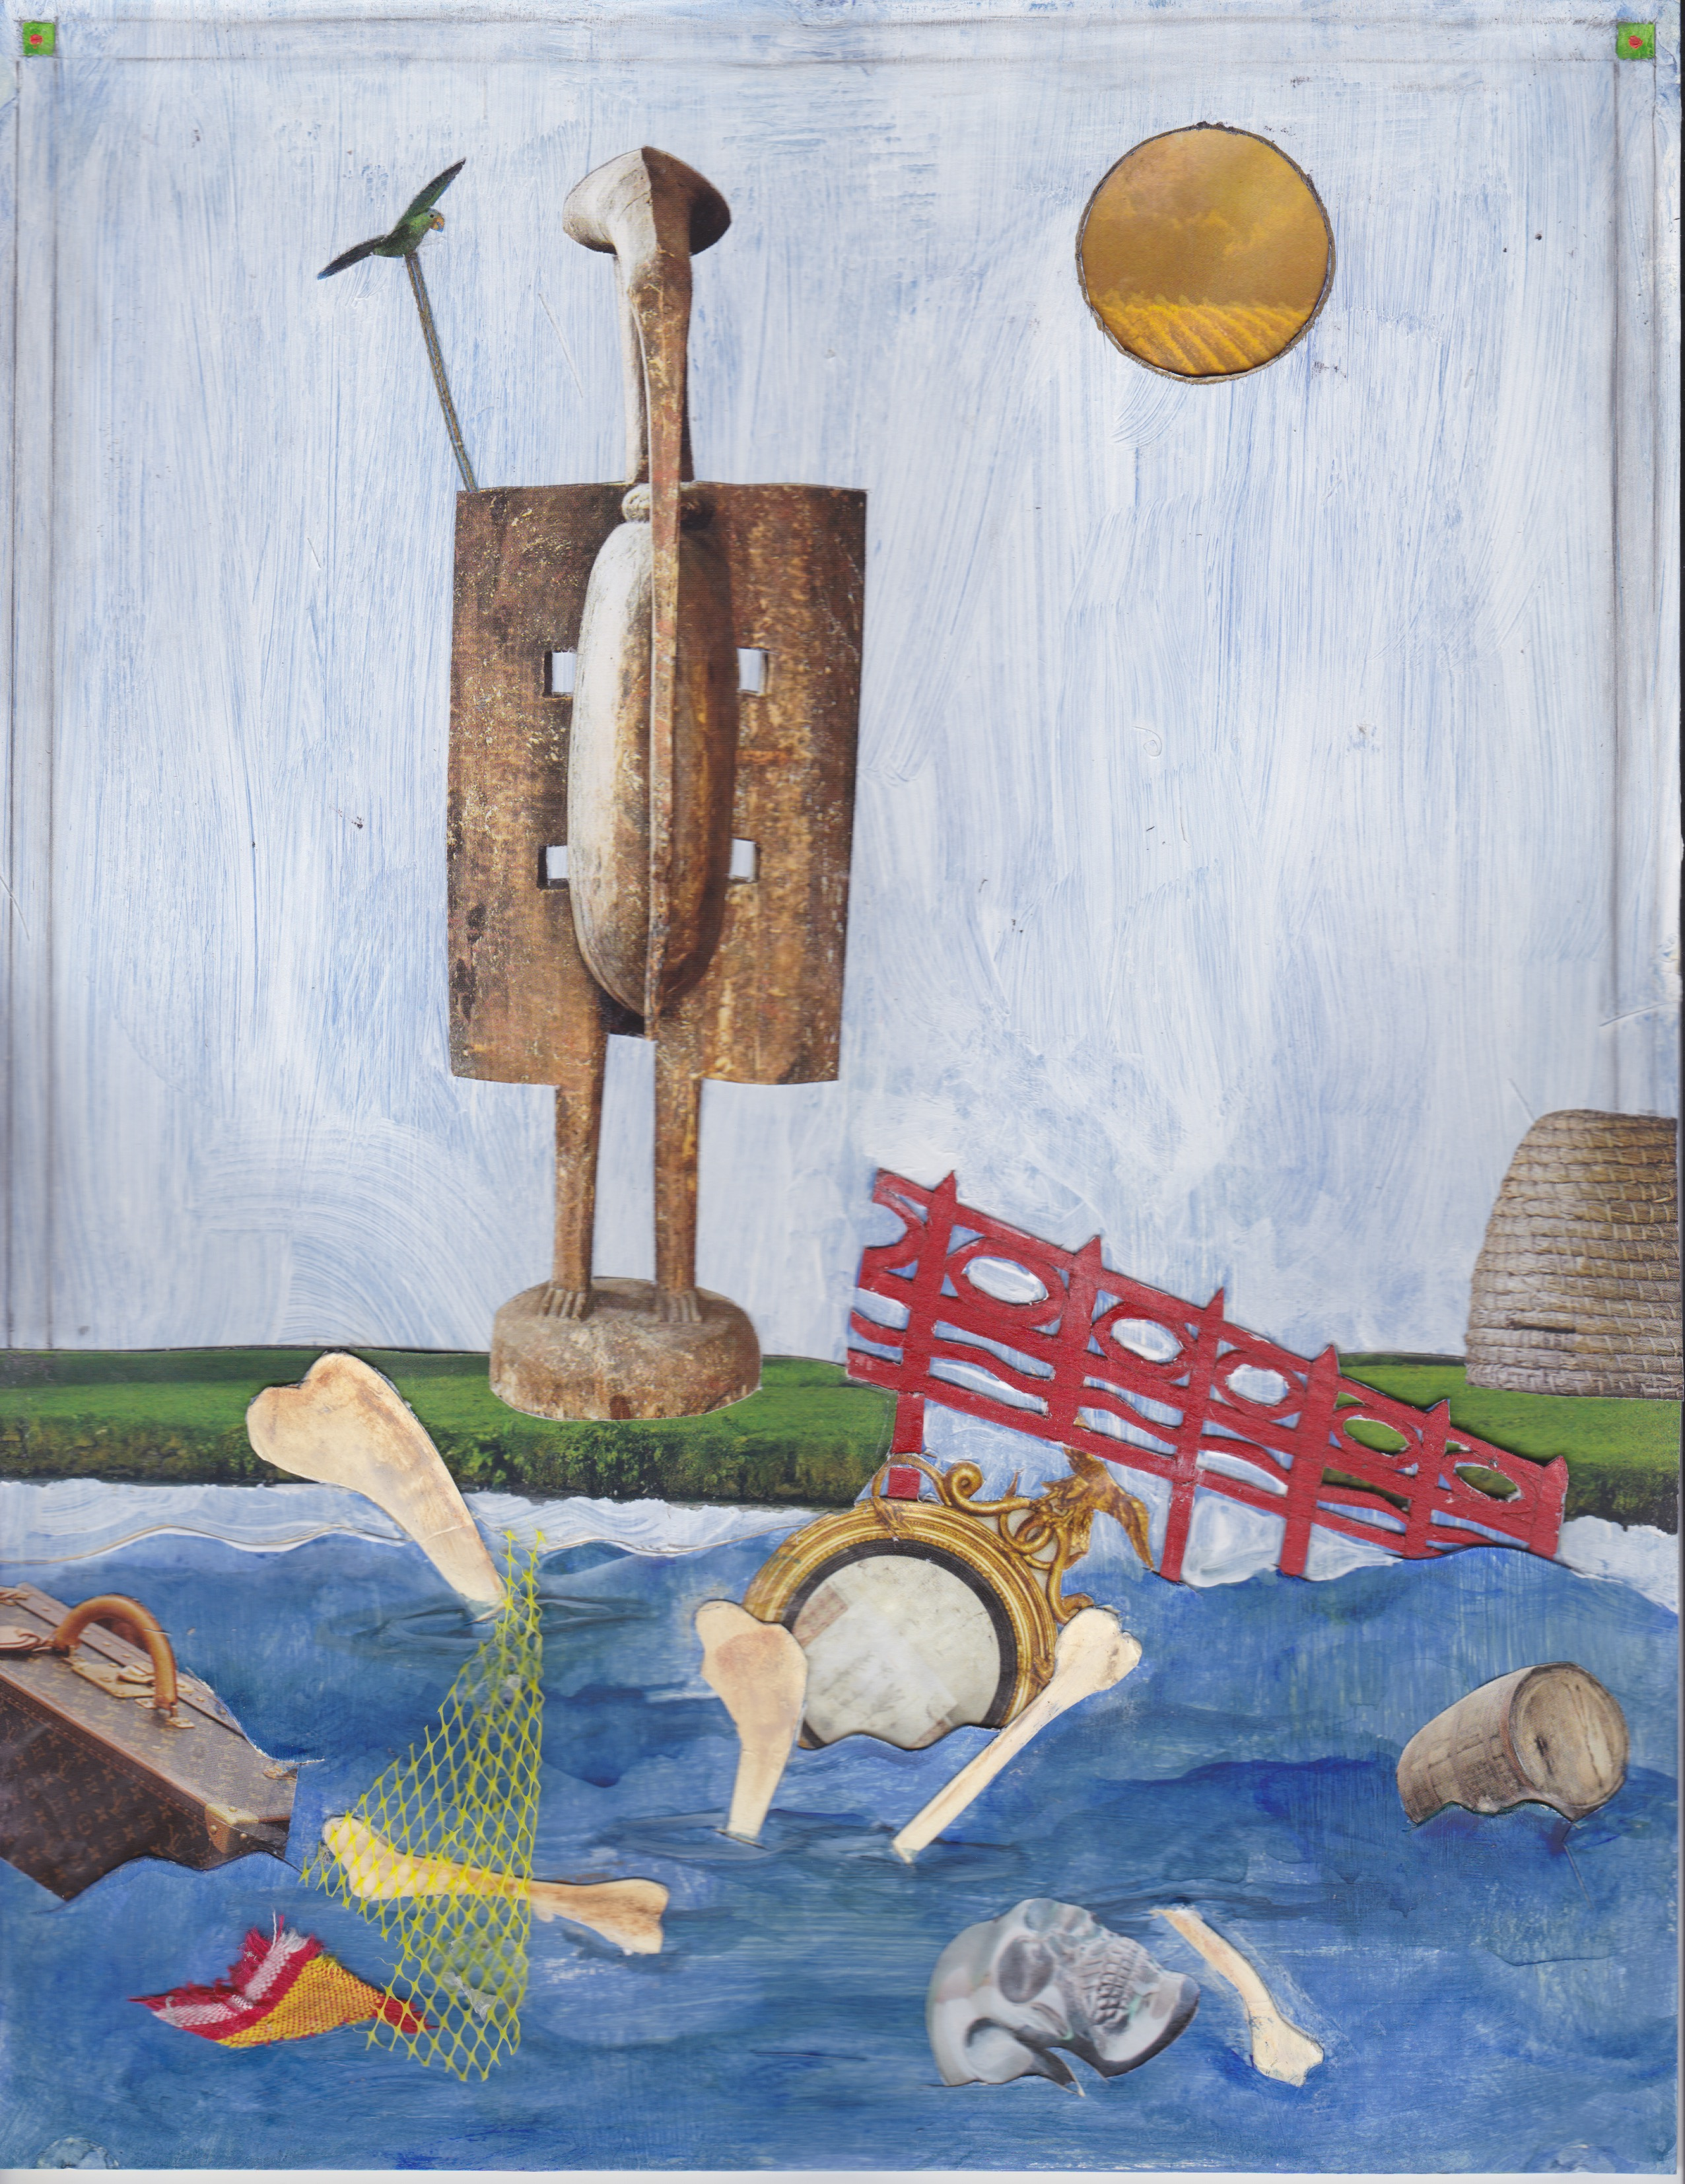 Painted collage showing human bones, suitcase, gilded mirror and other objects floating in a river with an African sculpture standing on the shore.